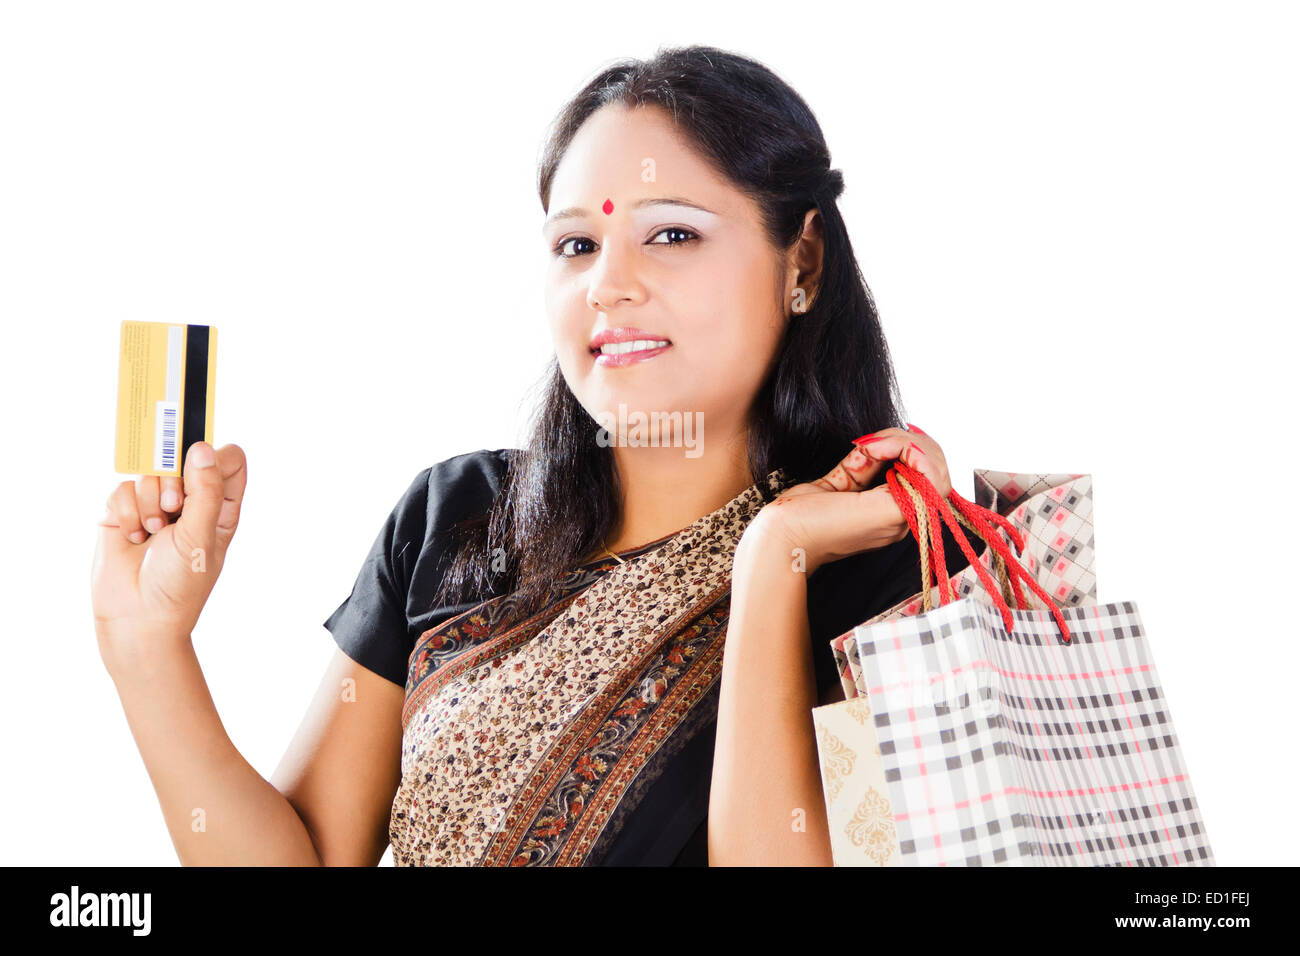 indian lady showing credit card stock photos indian lady showing